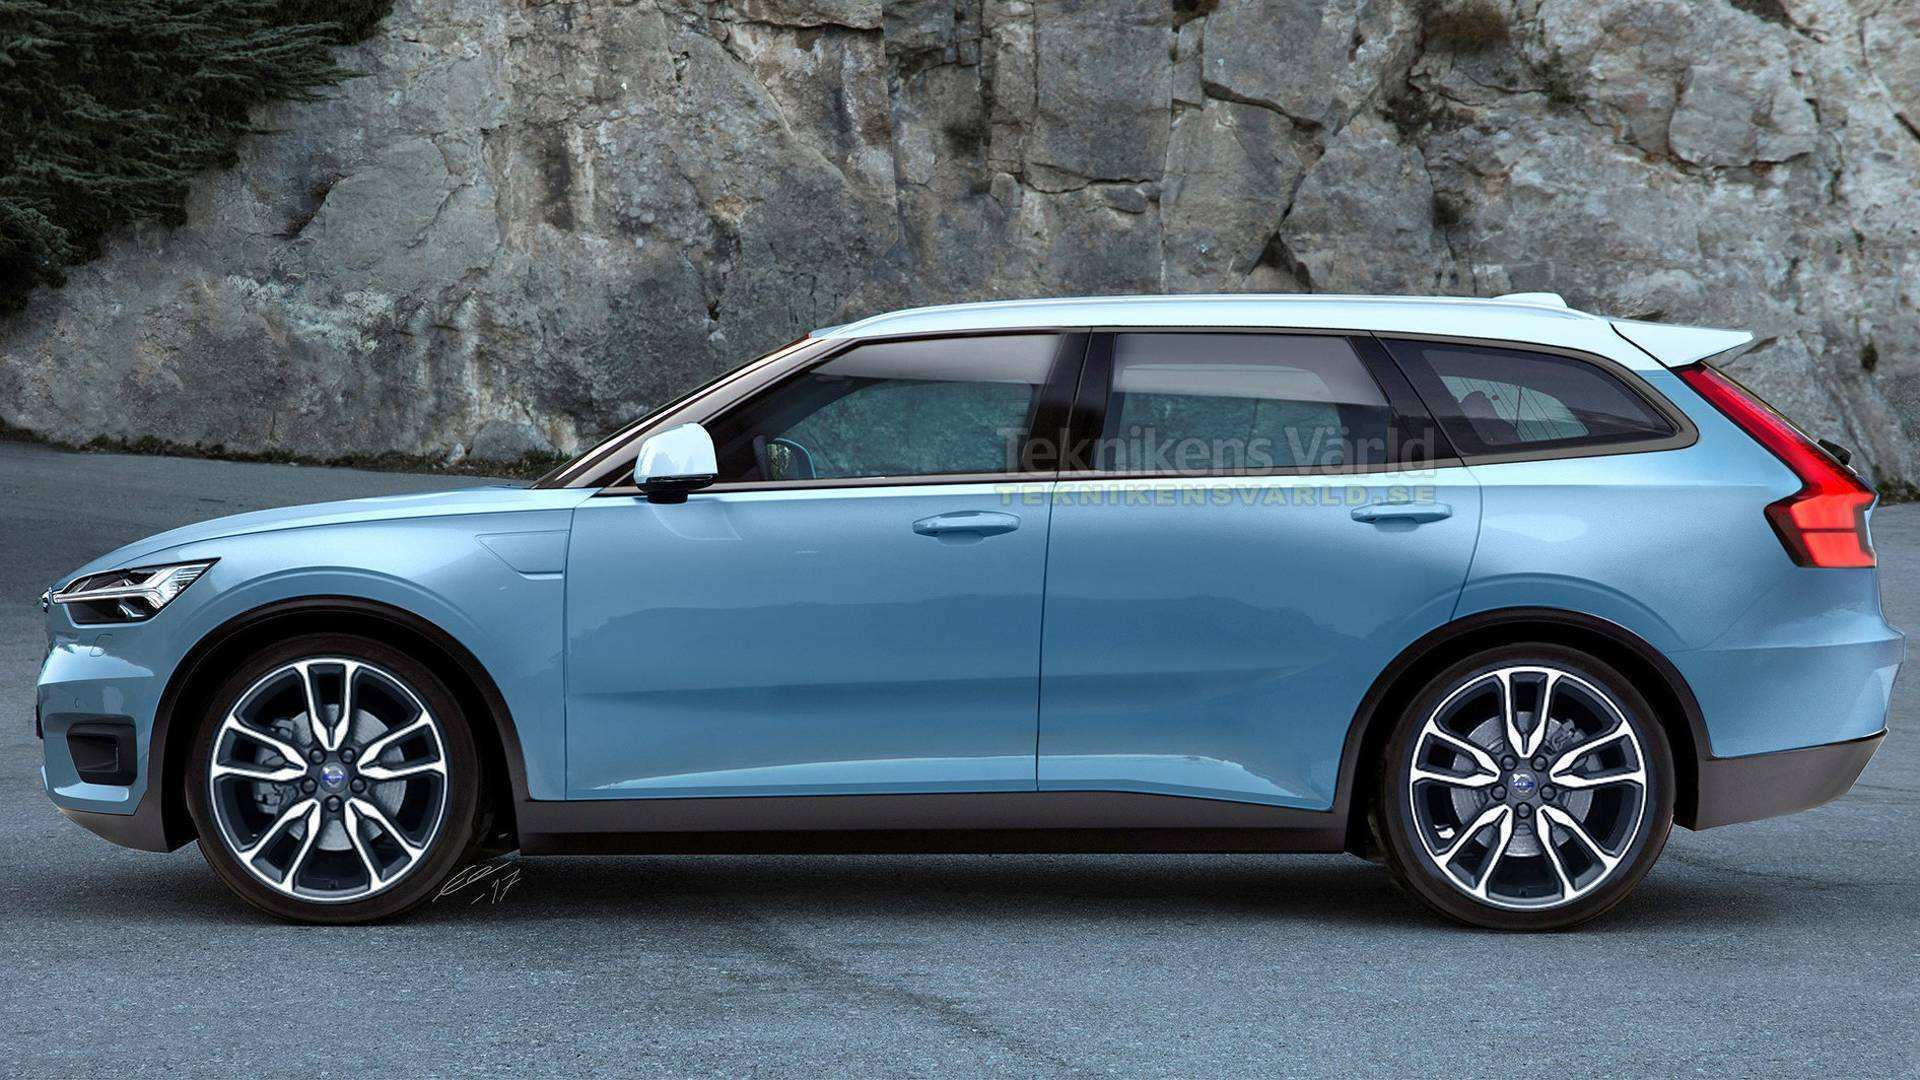 59 All New 2020 Volvo S40 Rumors for 2020 Volvo S40